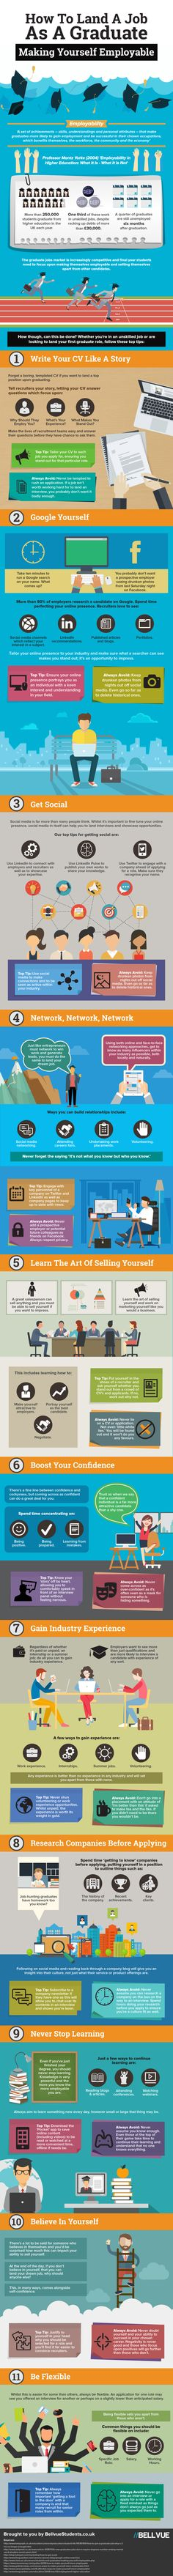 Making Yourself Employable: How To Land A Job As A Graduate #Infographic #Career #Job